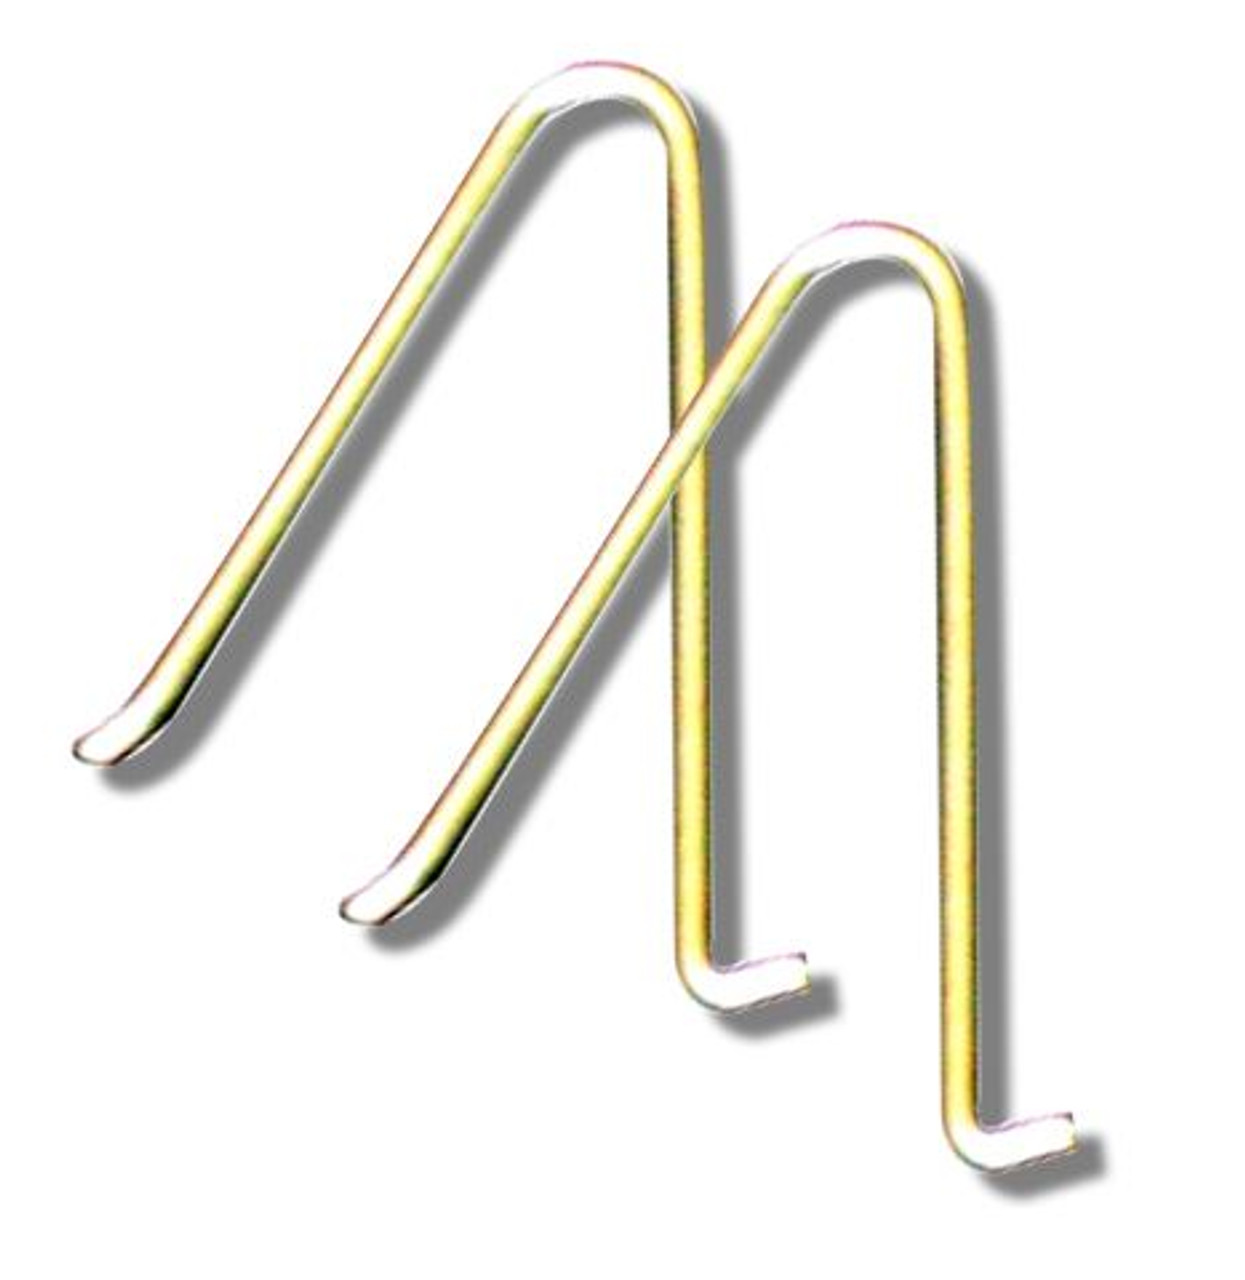 Universal Tent Pole Friction Springs Pack of 2